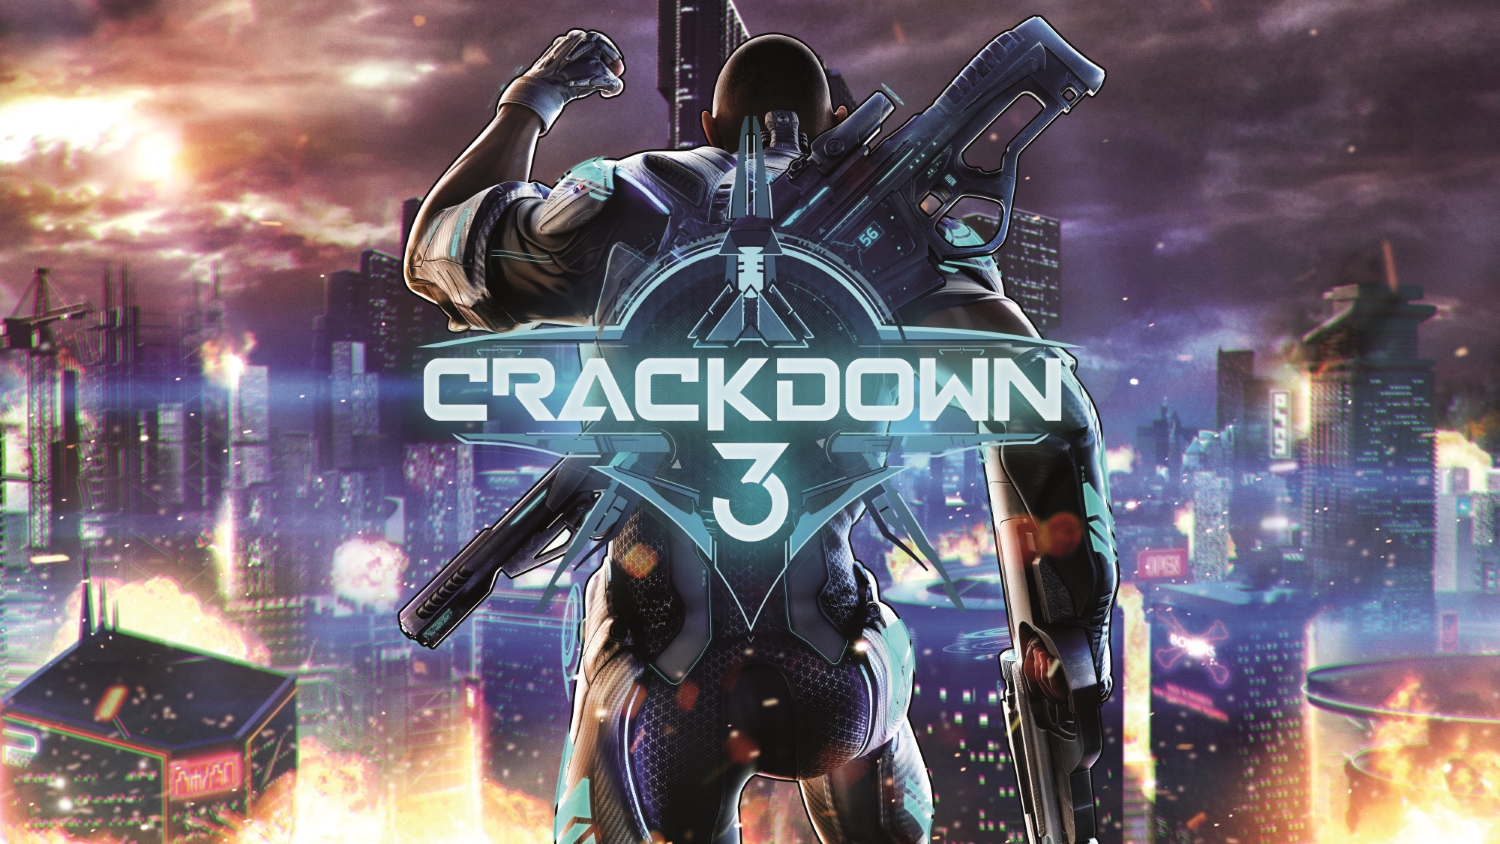 Crackdown 3 release date is February 2019, first multiplayer trailer looks great